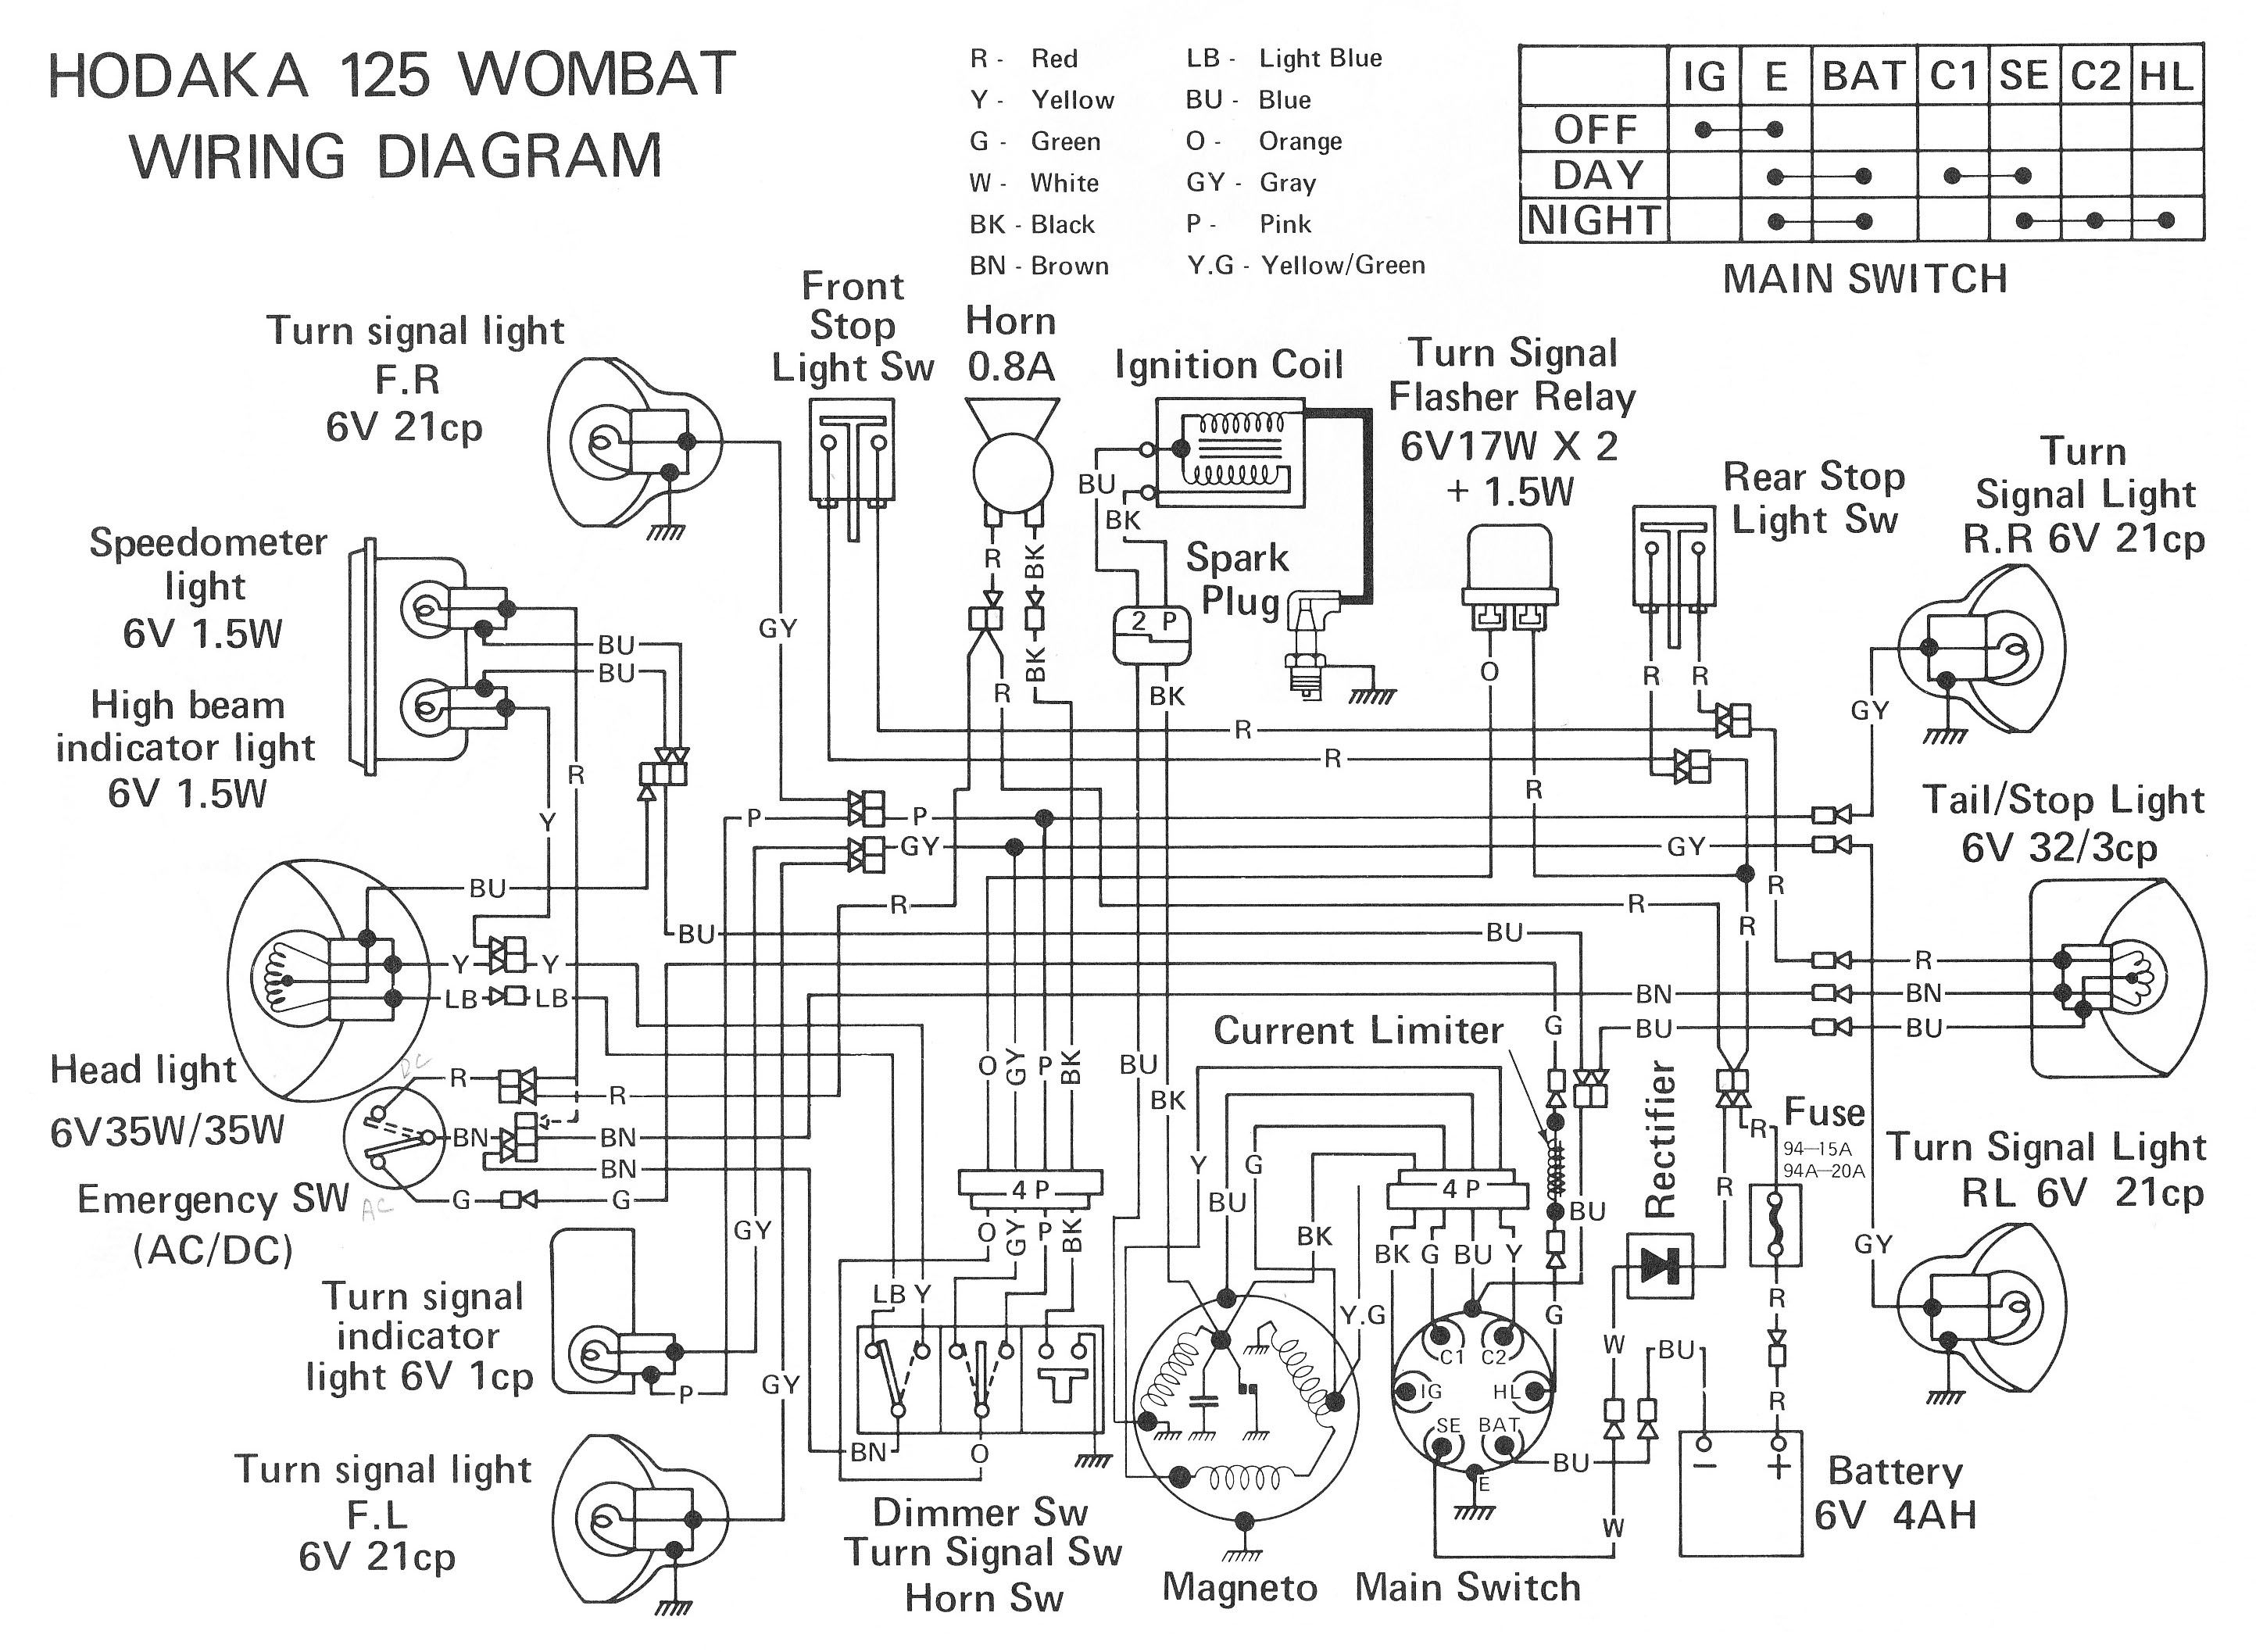 Dirt Bike Wiring Diagram | Hodaka | Diagram, Pocket bike